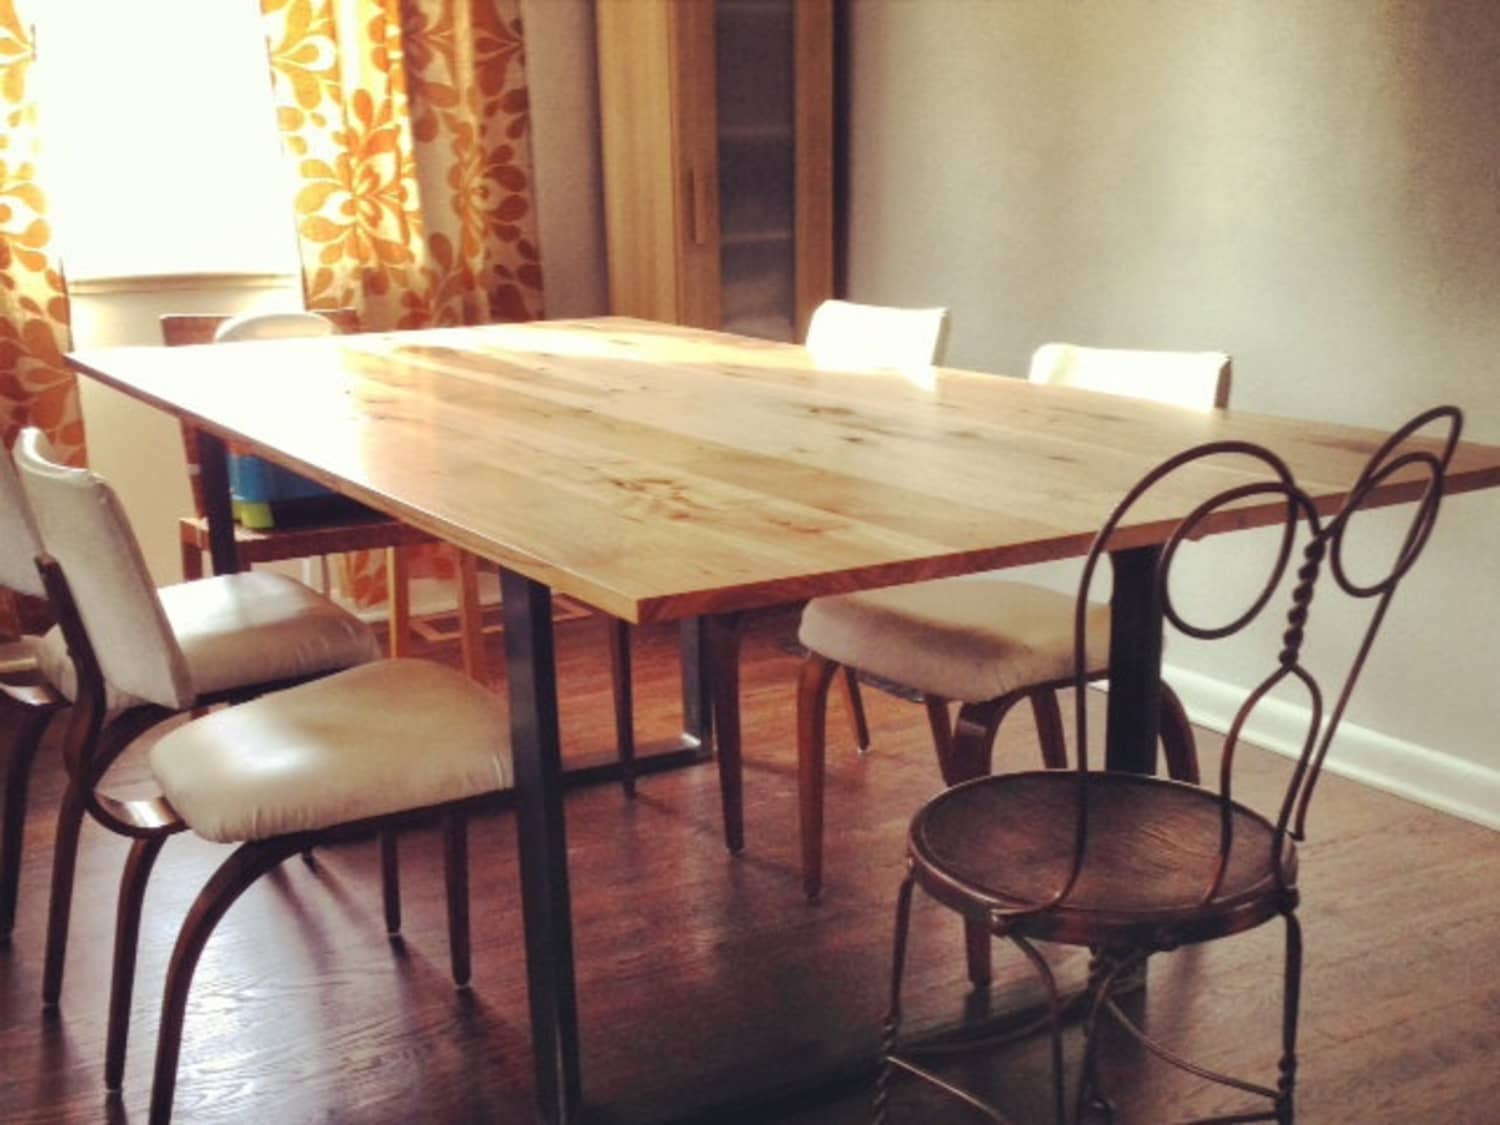 7 Reclaimed Handmade Wood Dining Table Makers You Should Know About Kitchn